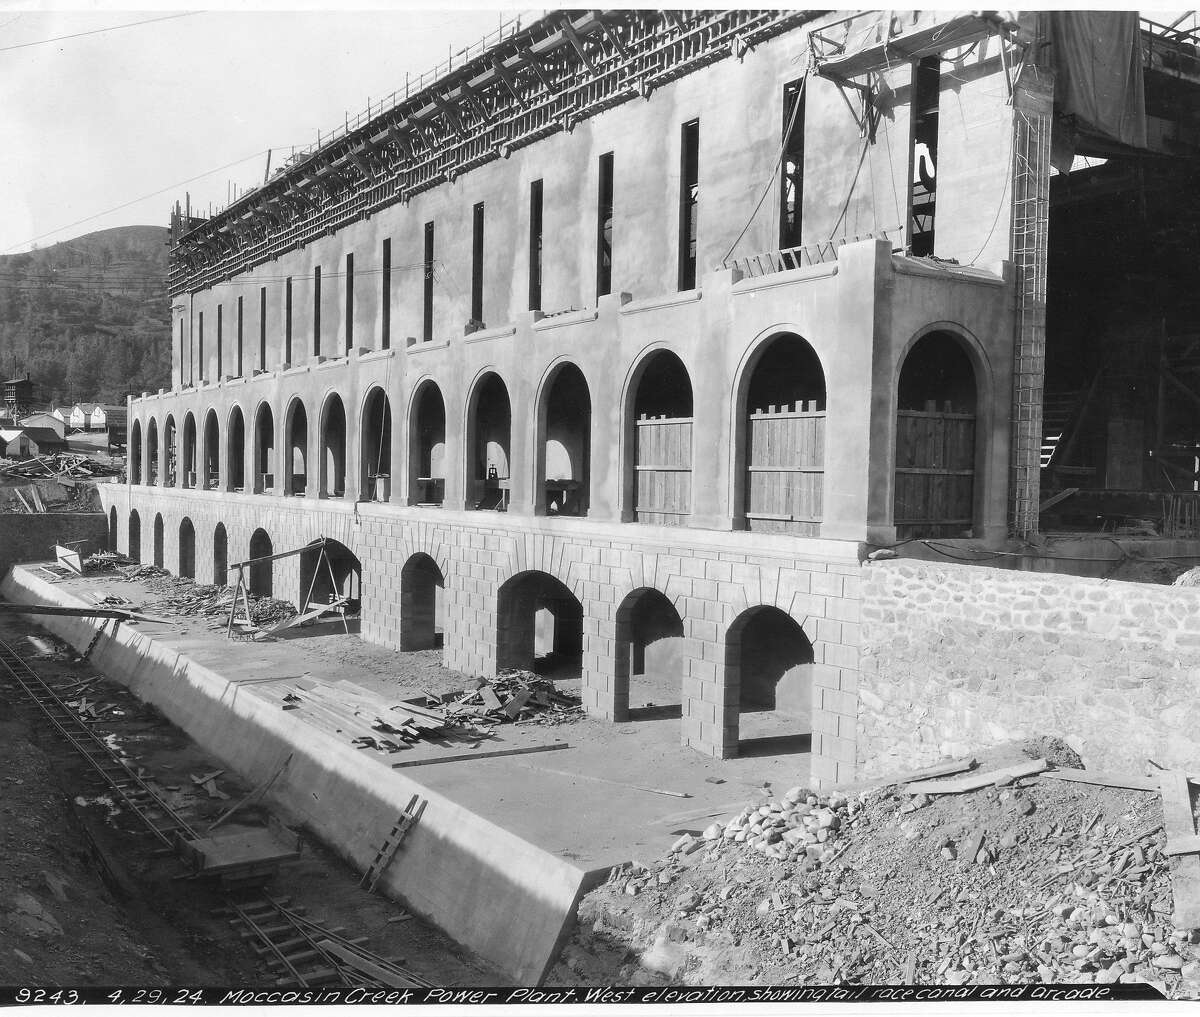 A stop on the Hetch Hetchy system, closeup of the exterior of the Moccasin Power Plan under construction, April 28, 1924 Handout photo courtesy of Hetch Hetchy Water Service